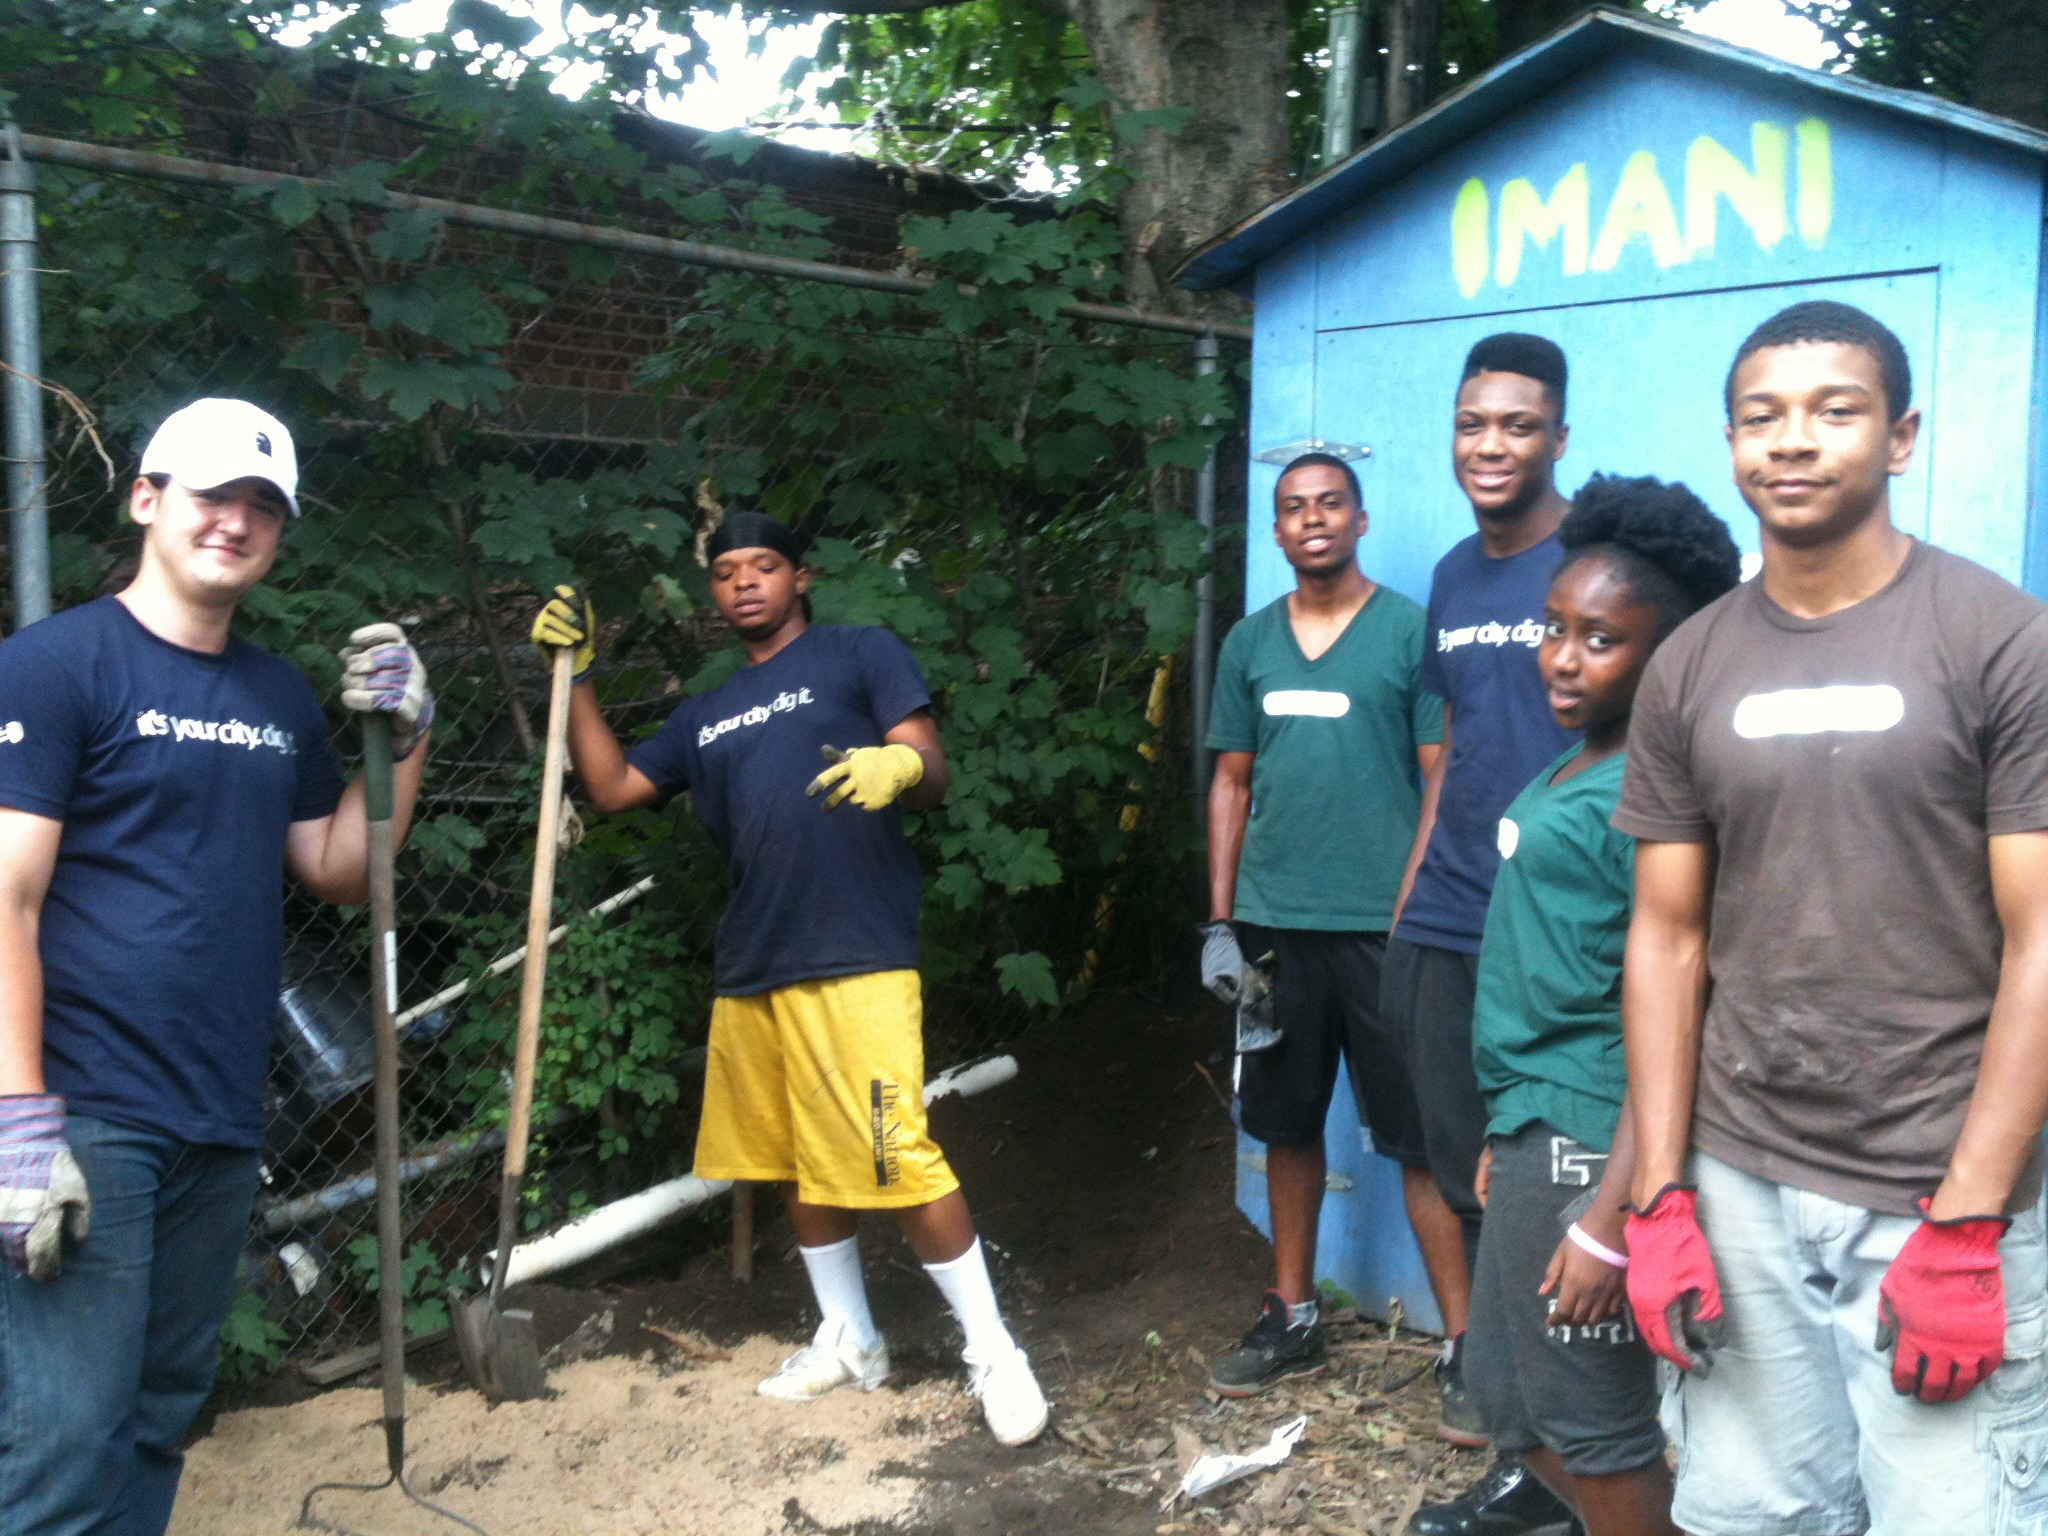 Youth working at Imani Garden